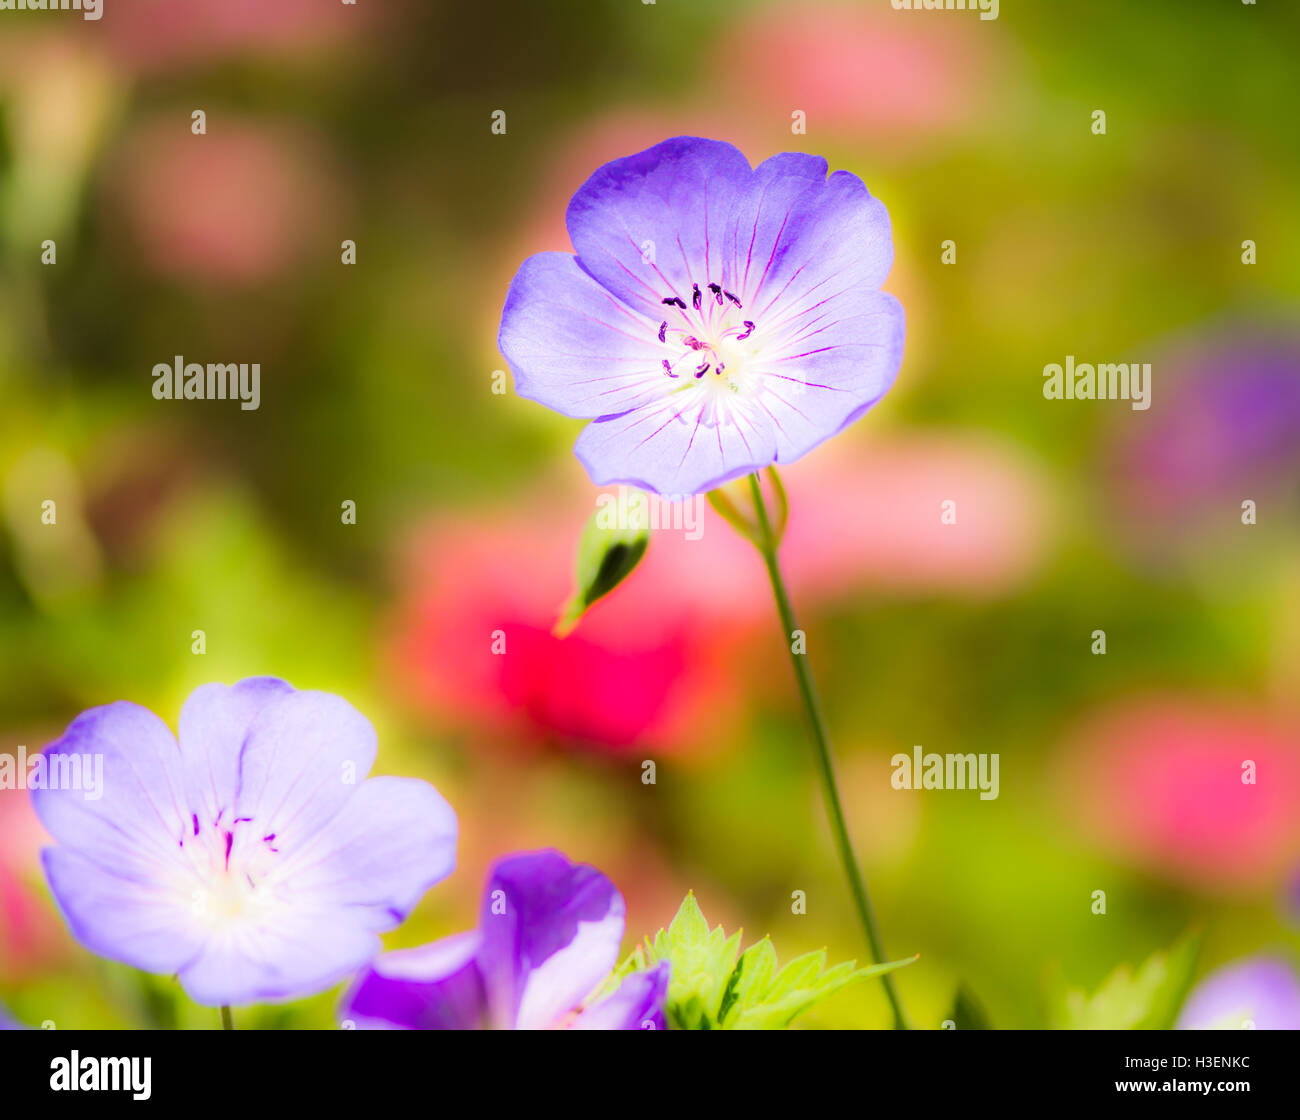 Macro of Geranium flower blossoms with selective focus - Stock Image